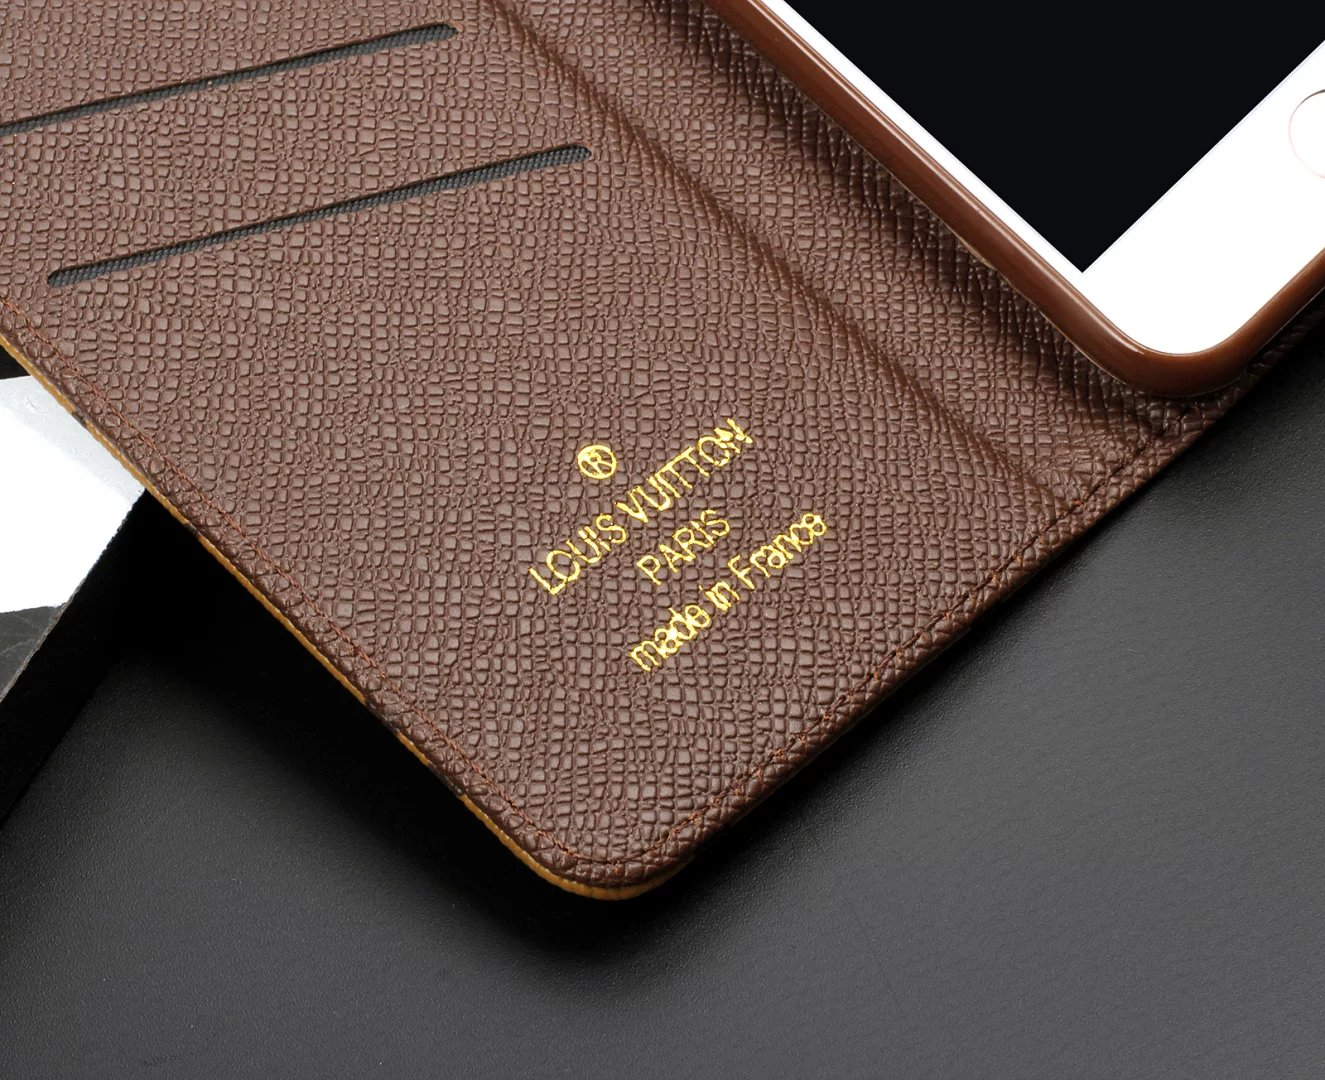 best phone case for iphone 6s iphone 6s cases leather fashion iphone6s case custom phone cases iphone 6s new iphone 6s cost apple iphone 6s release date and price phone covers iphone popular iphone cases branded iphone 6s cases